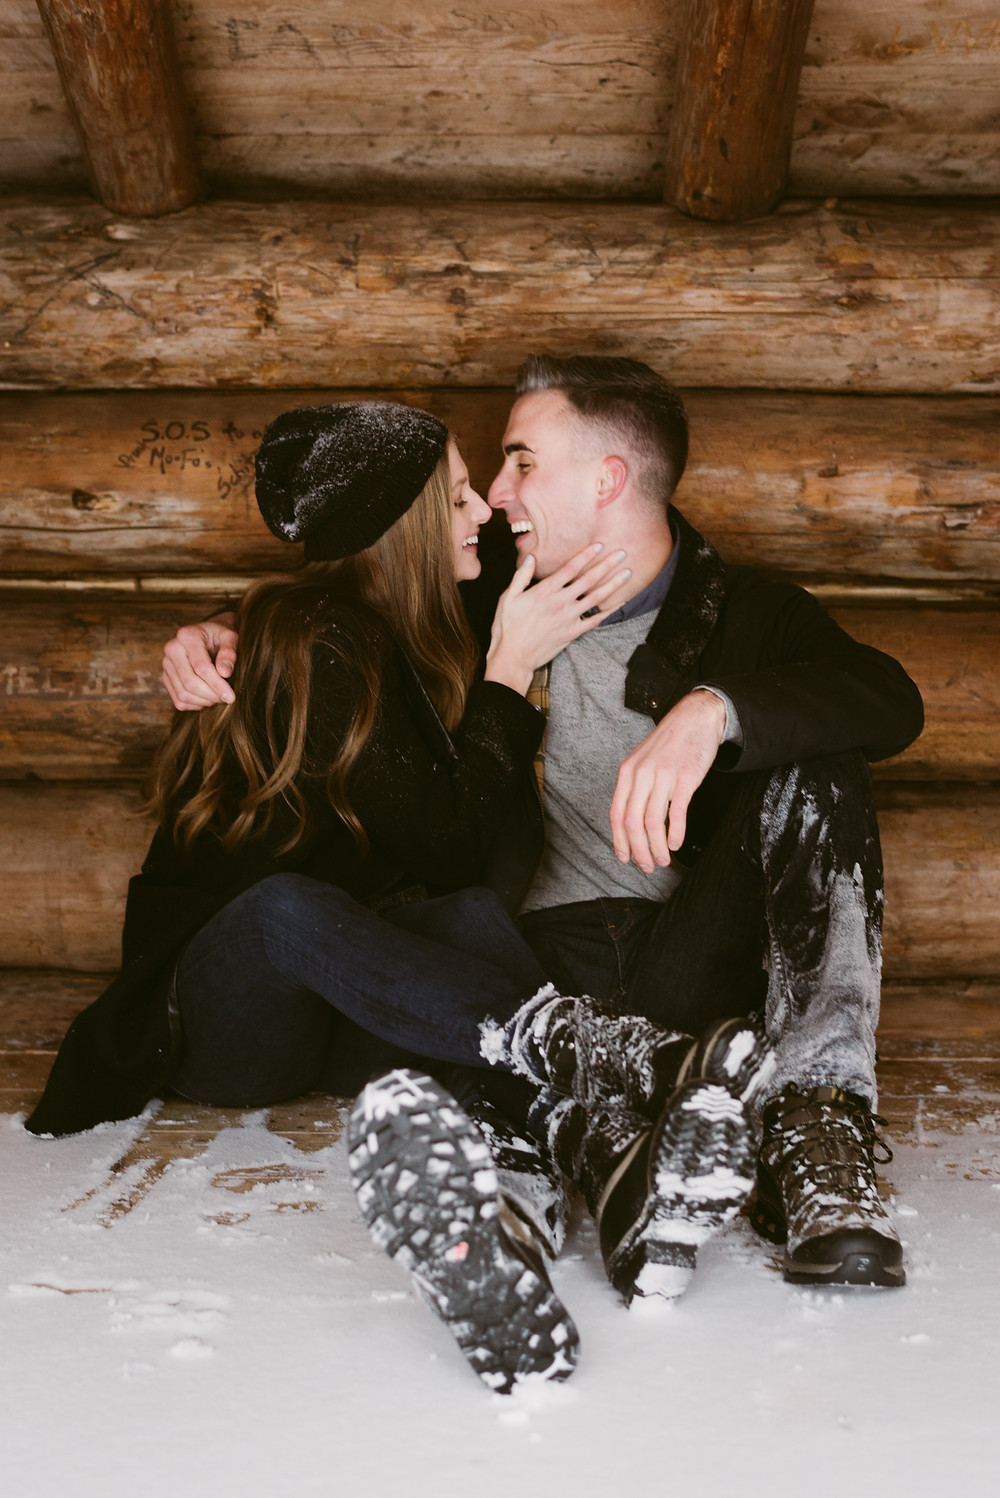 Snowy engagement session in a lean-to